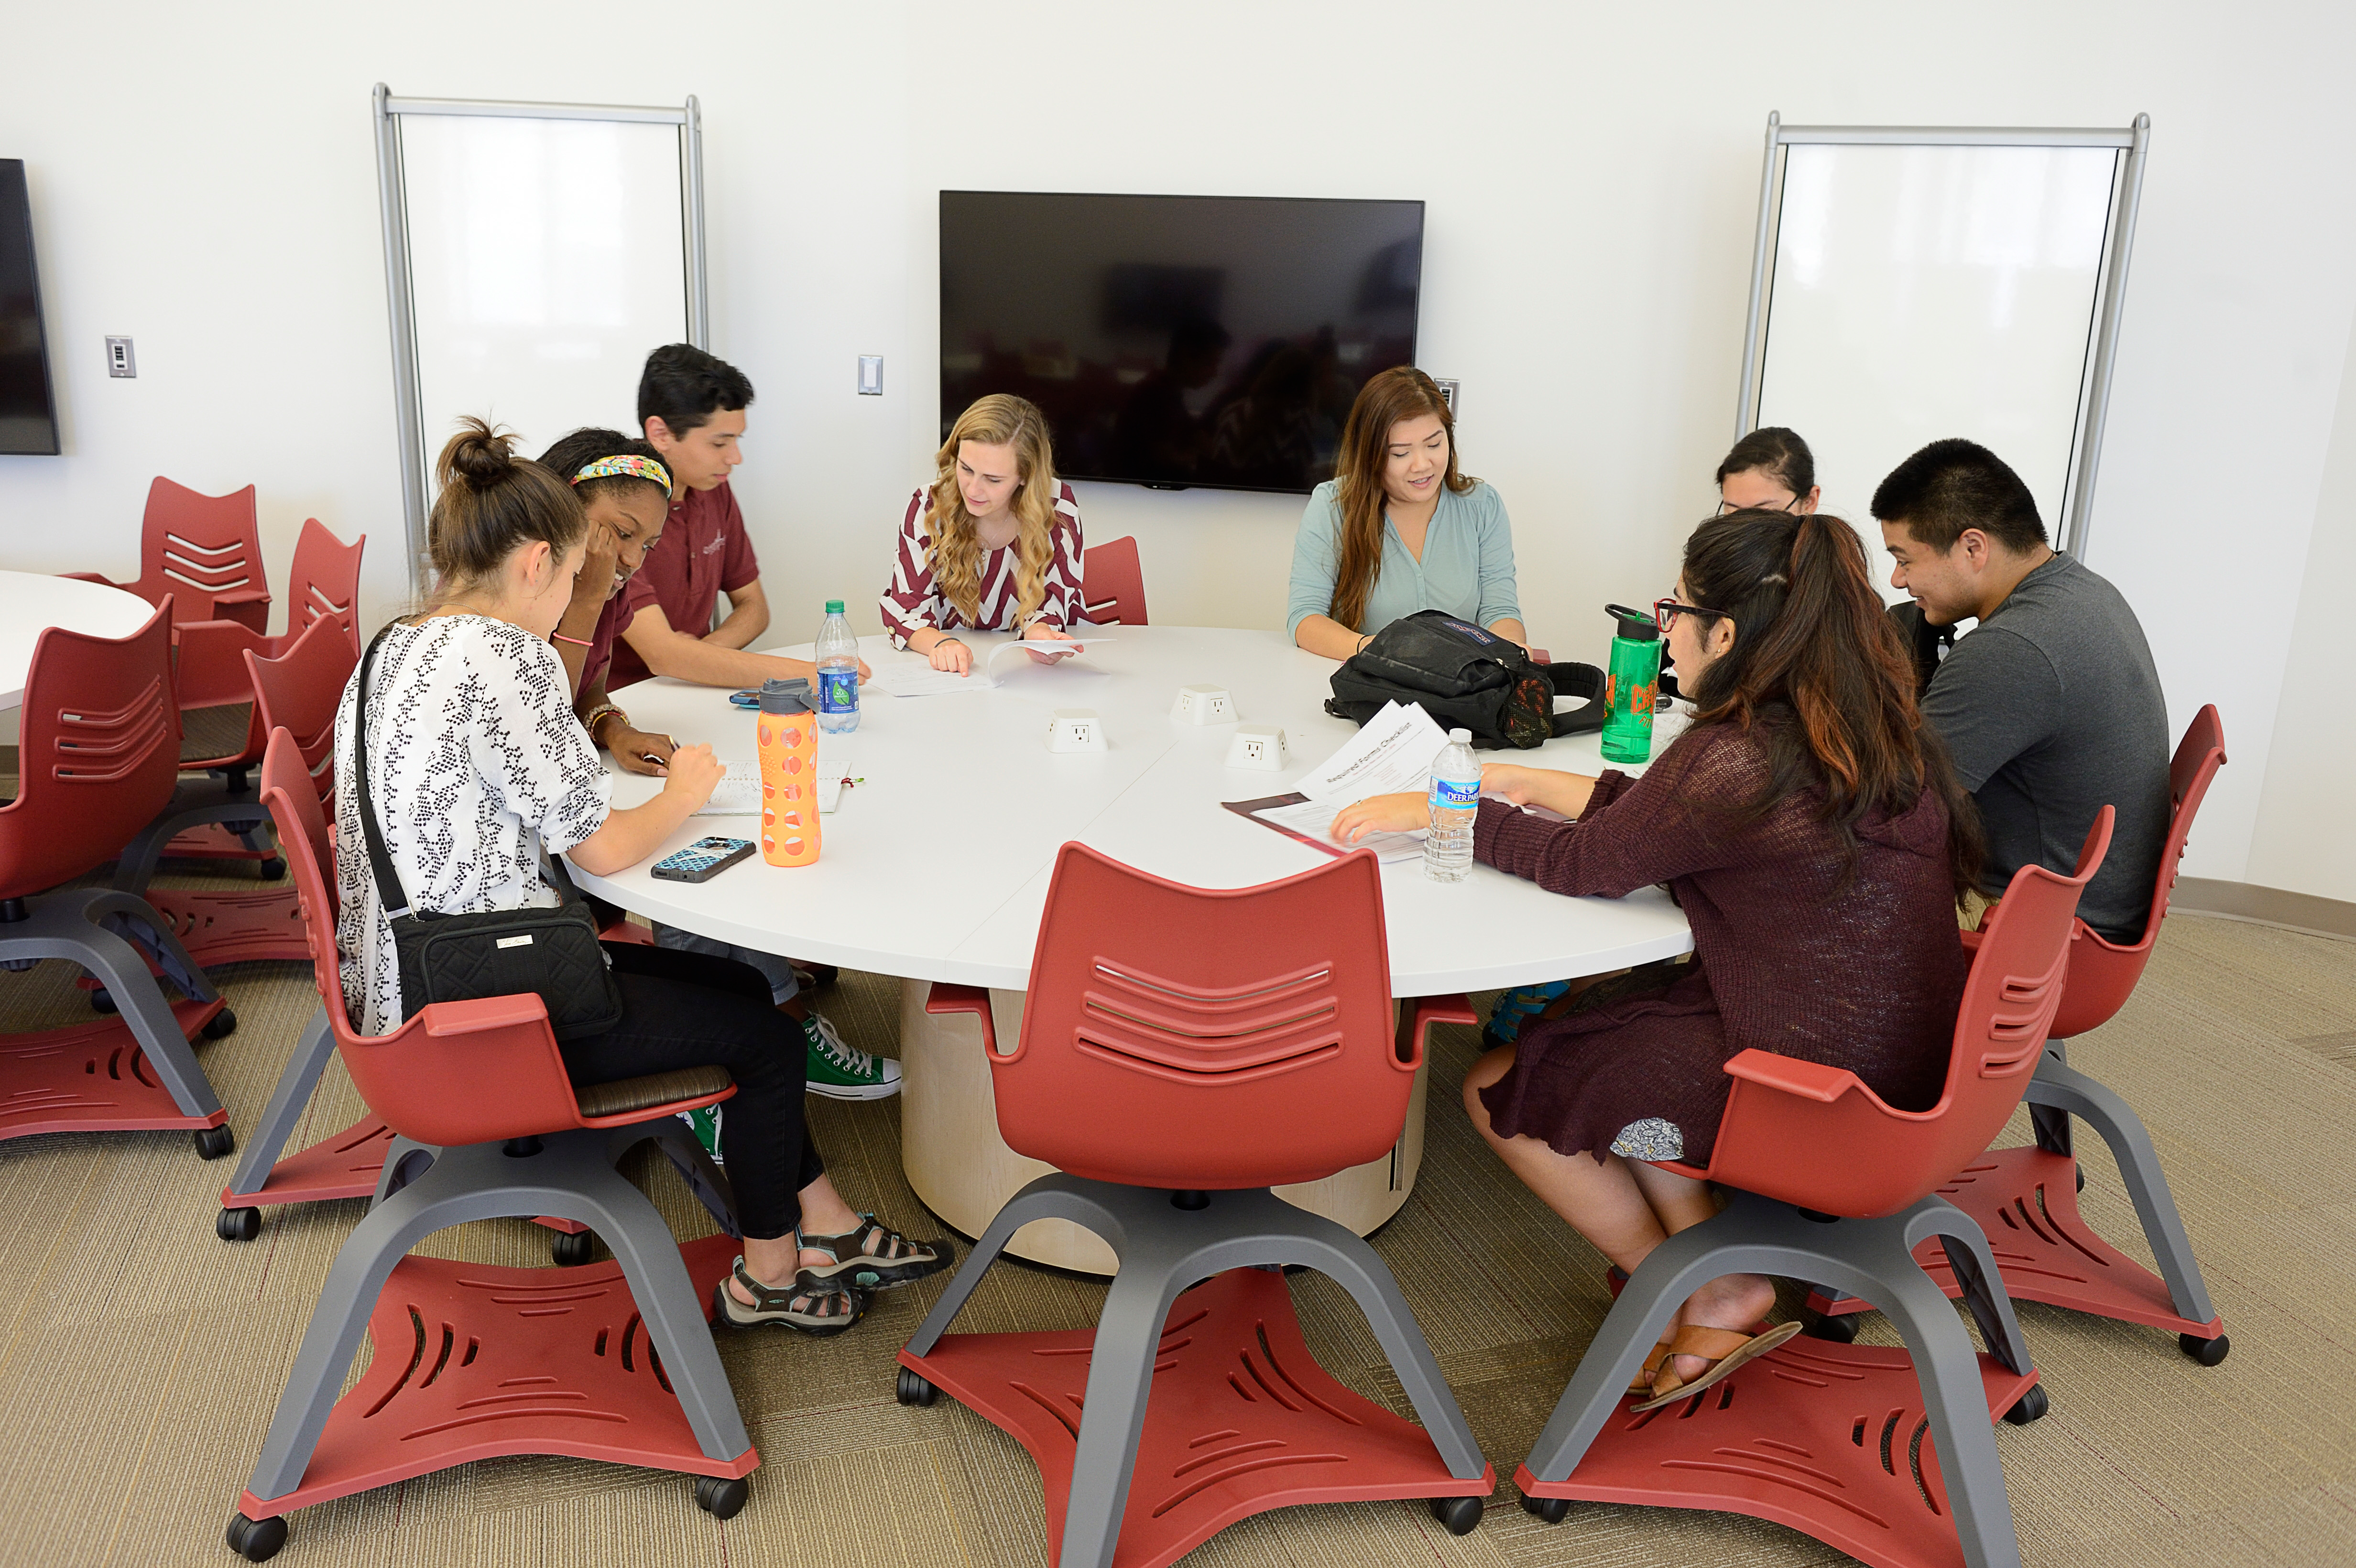 For The 13 Flexible Classrooms Selected Furniture Can Easily Facilitate Group Breakout Work Lecture Style Rows And Horseshoe Discussion